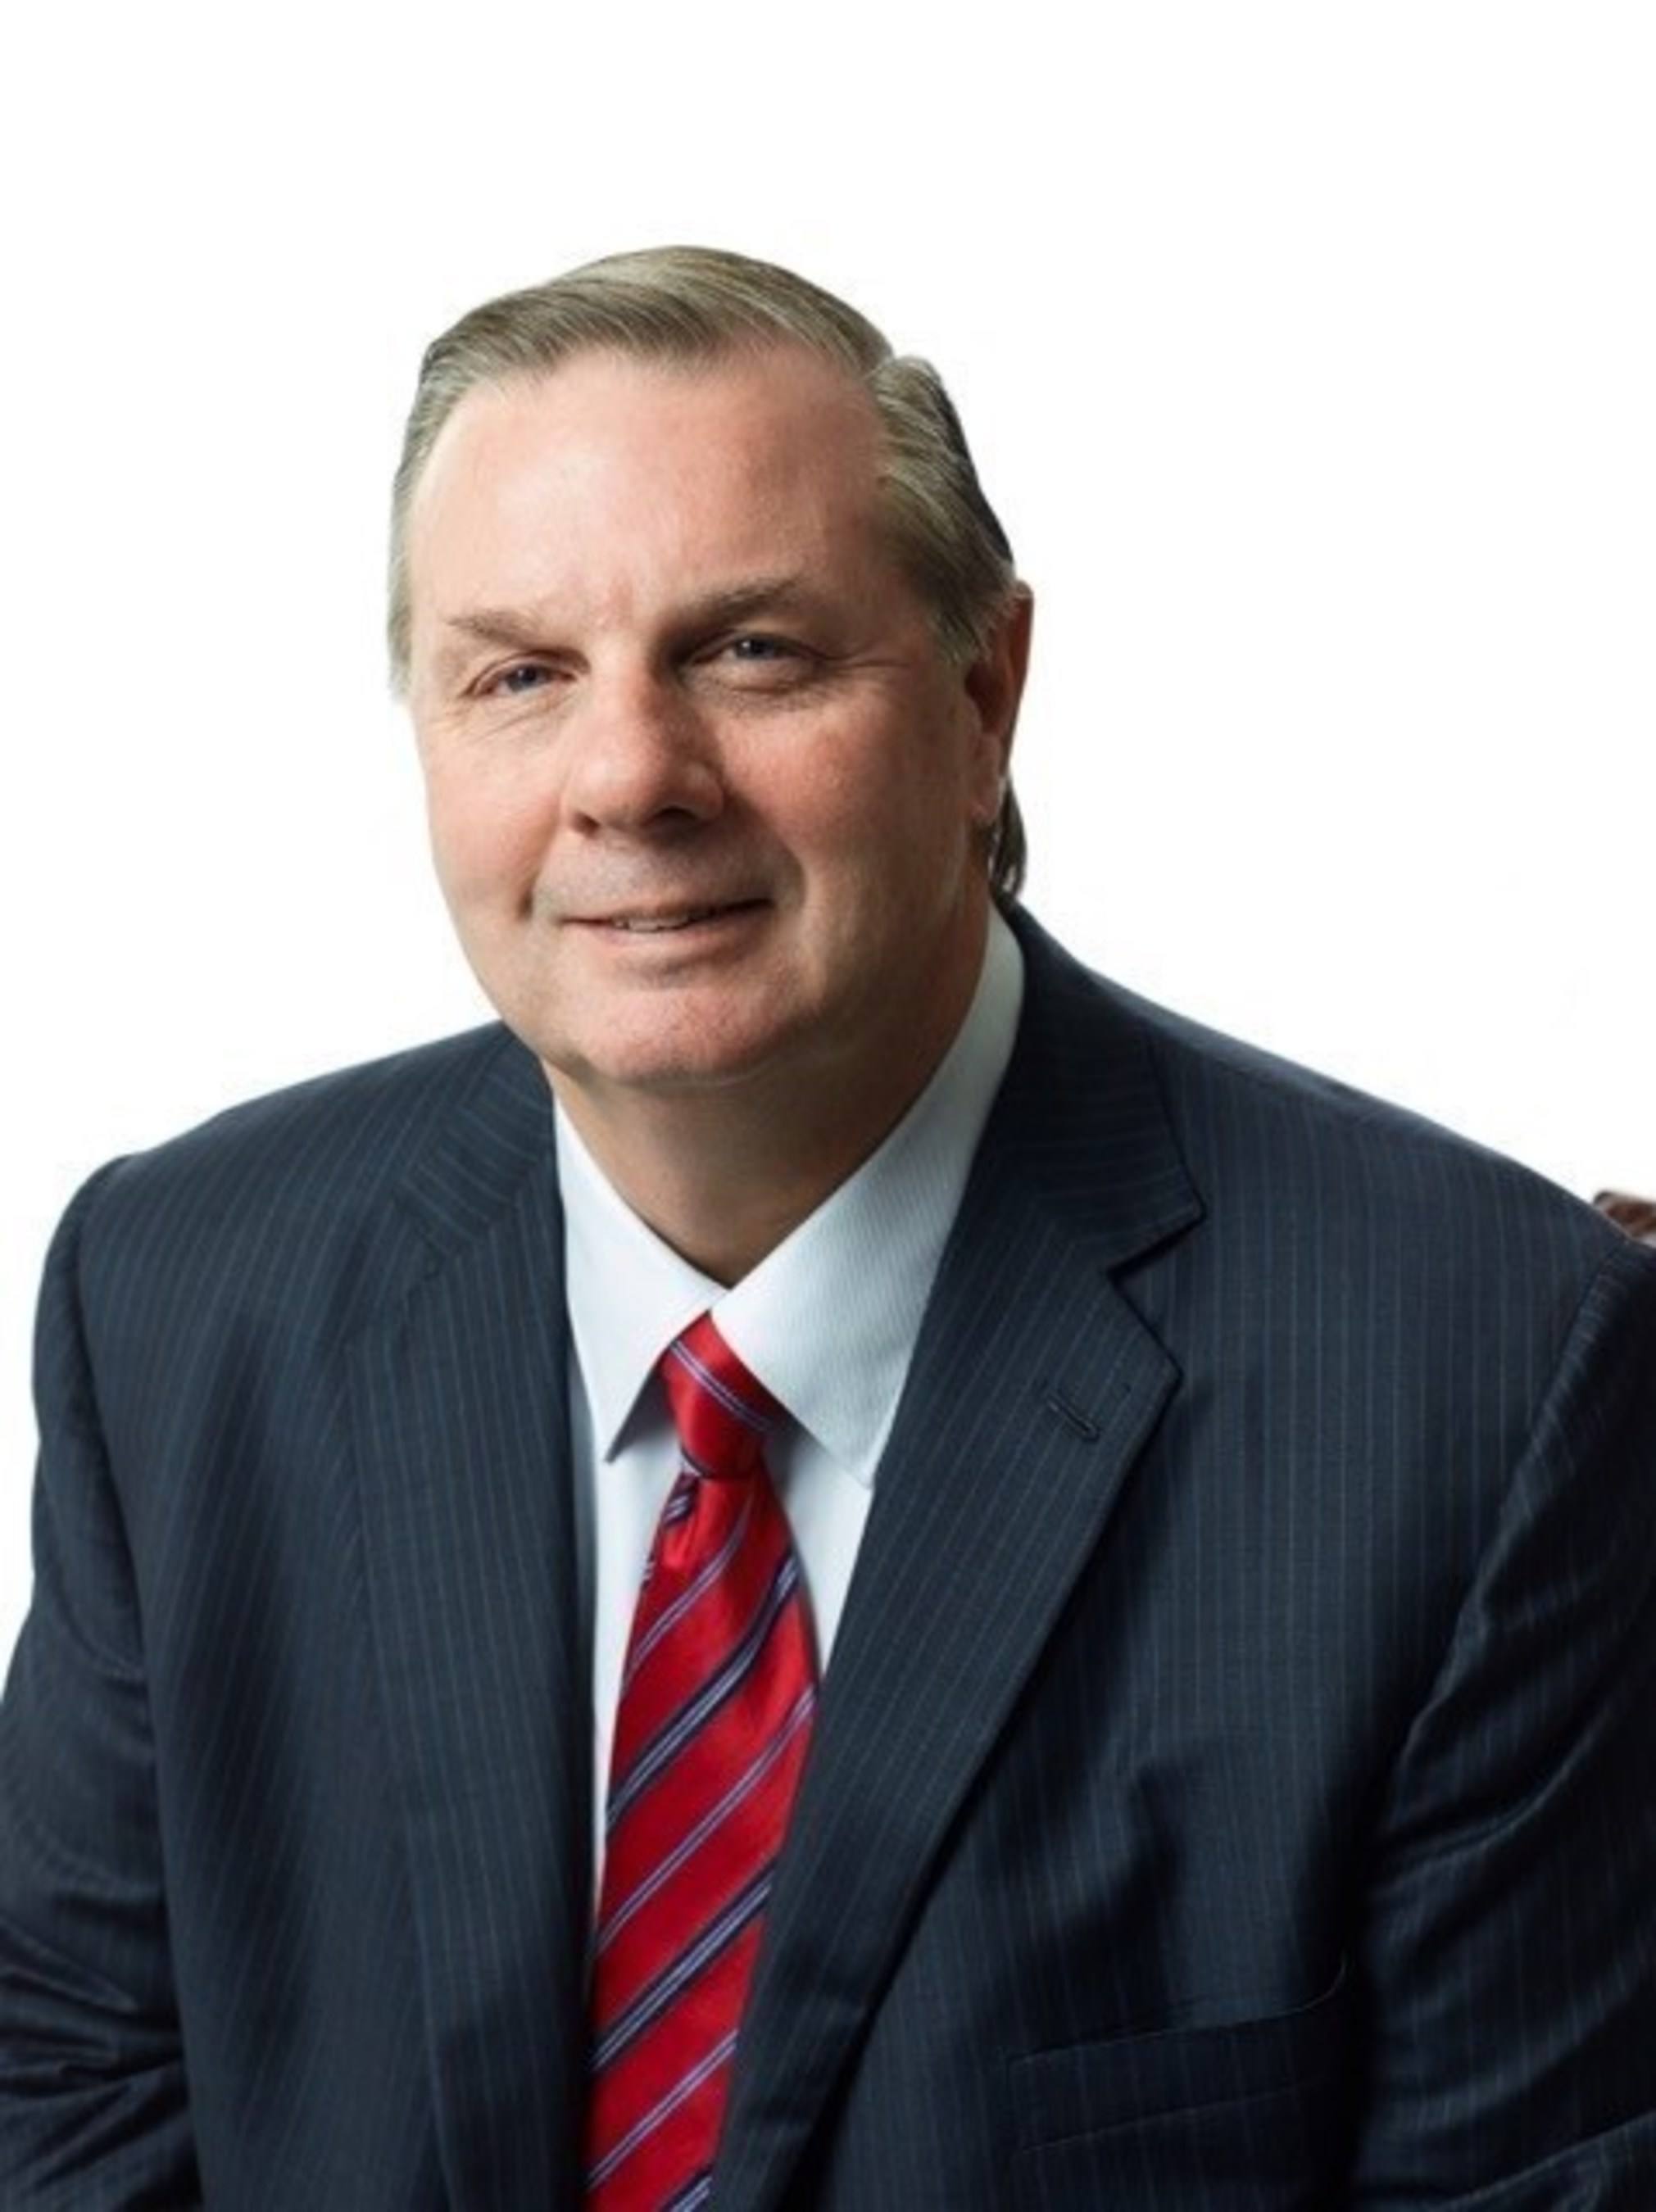 Joseph V. Tripodi, 59, retired executive vice president and chief marketing and commercial officer for The Coca-Cola Company, has joined Voya Financial's board of directors, effective April 13, 2015.